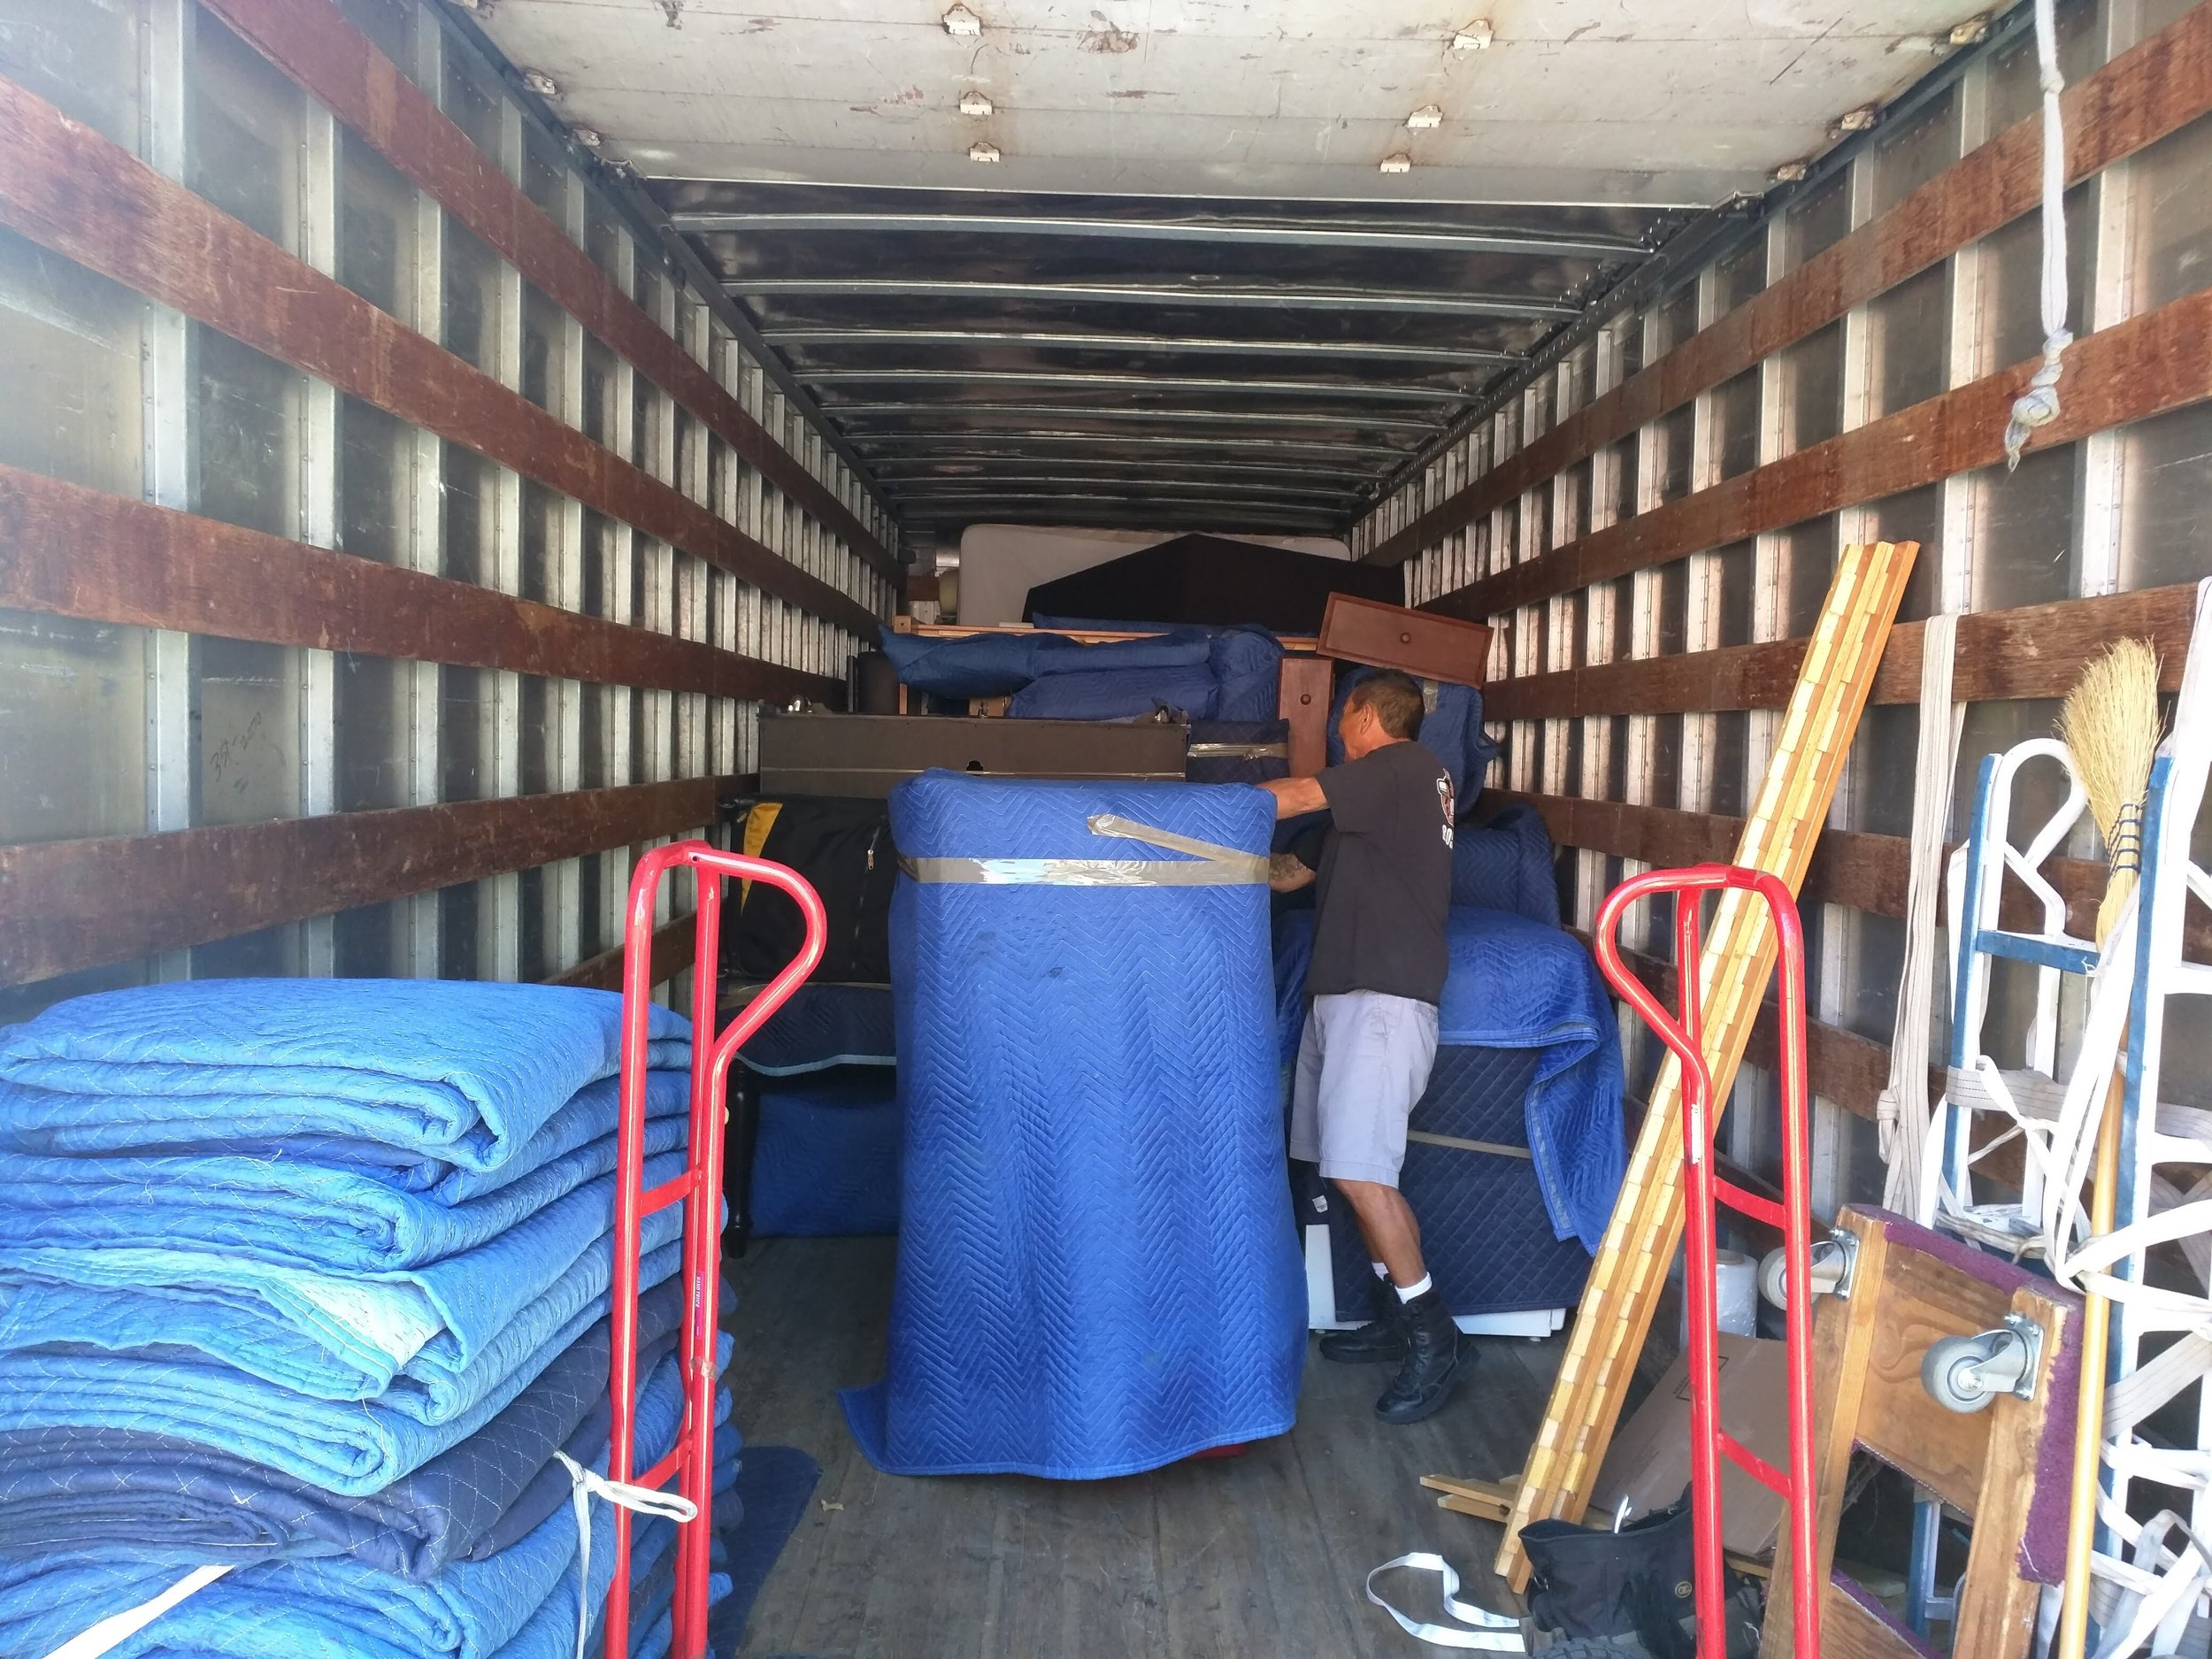 simi valley movers | loading truck | movers in simi valley